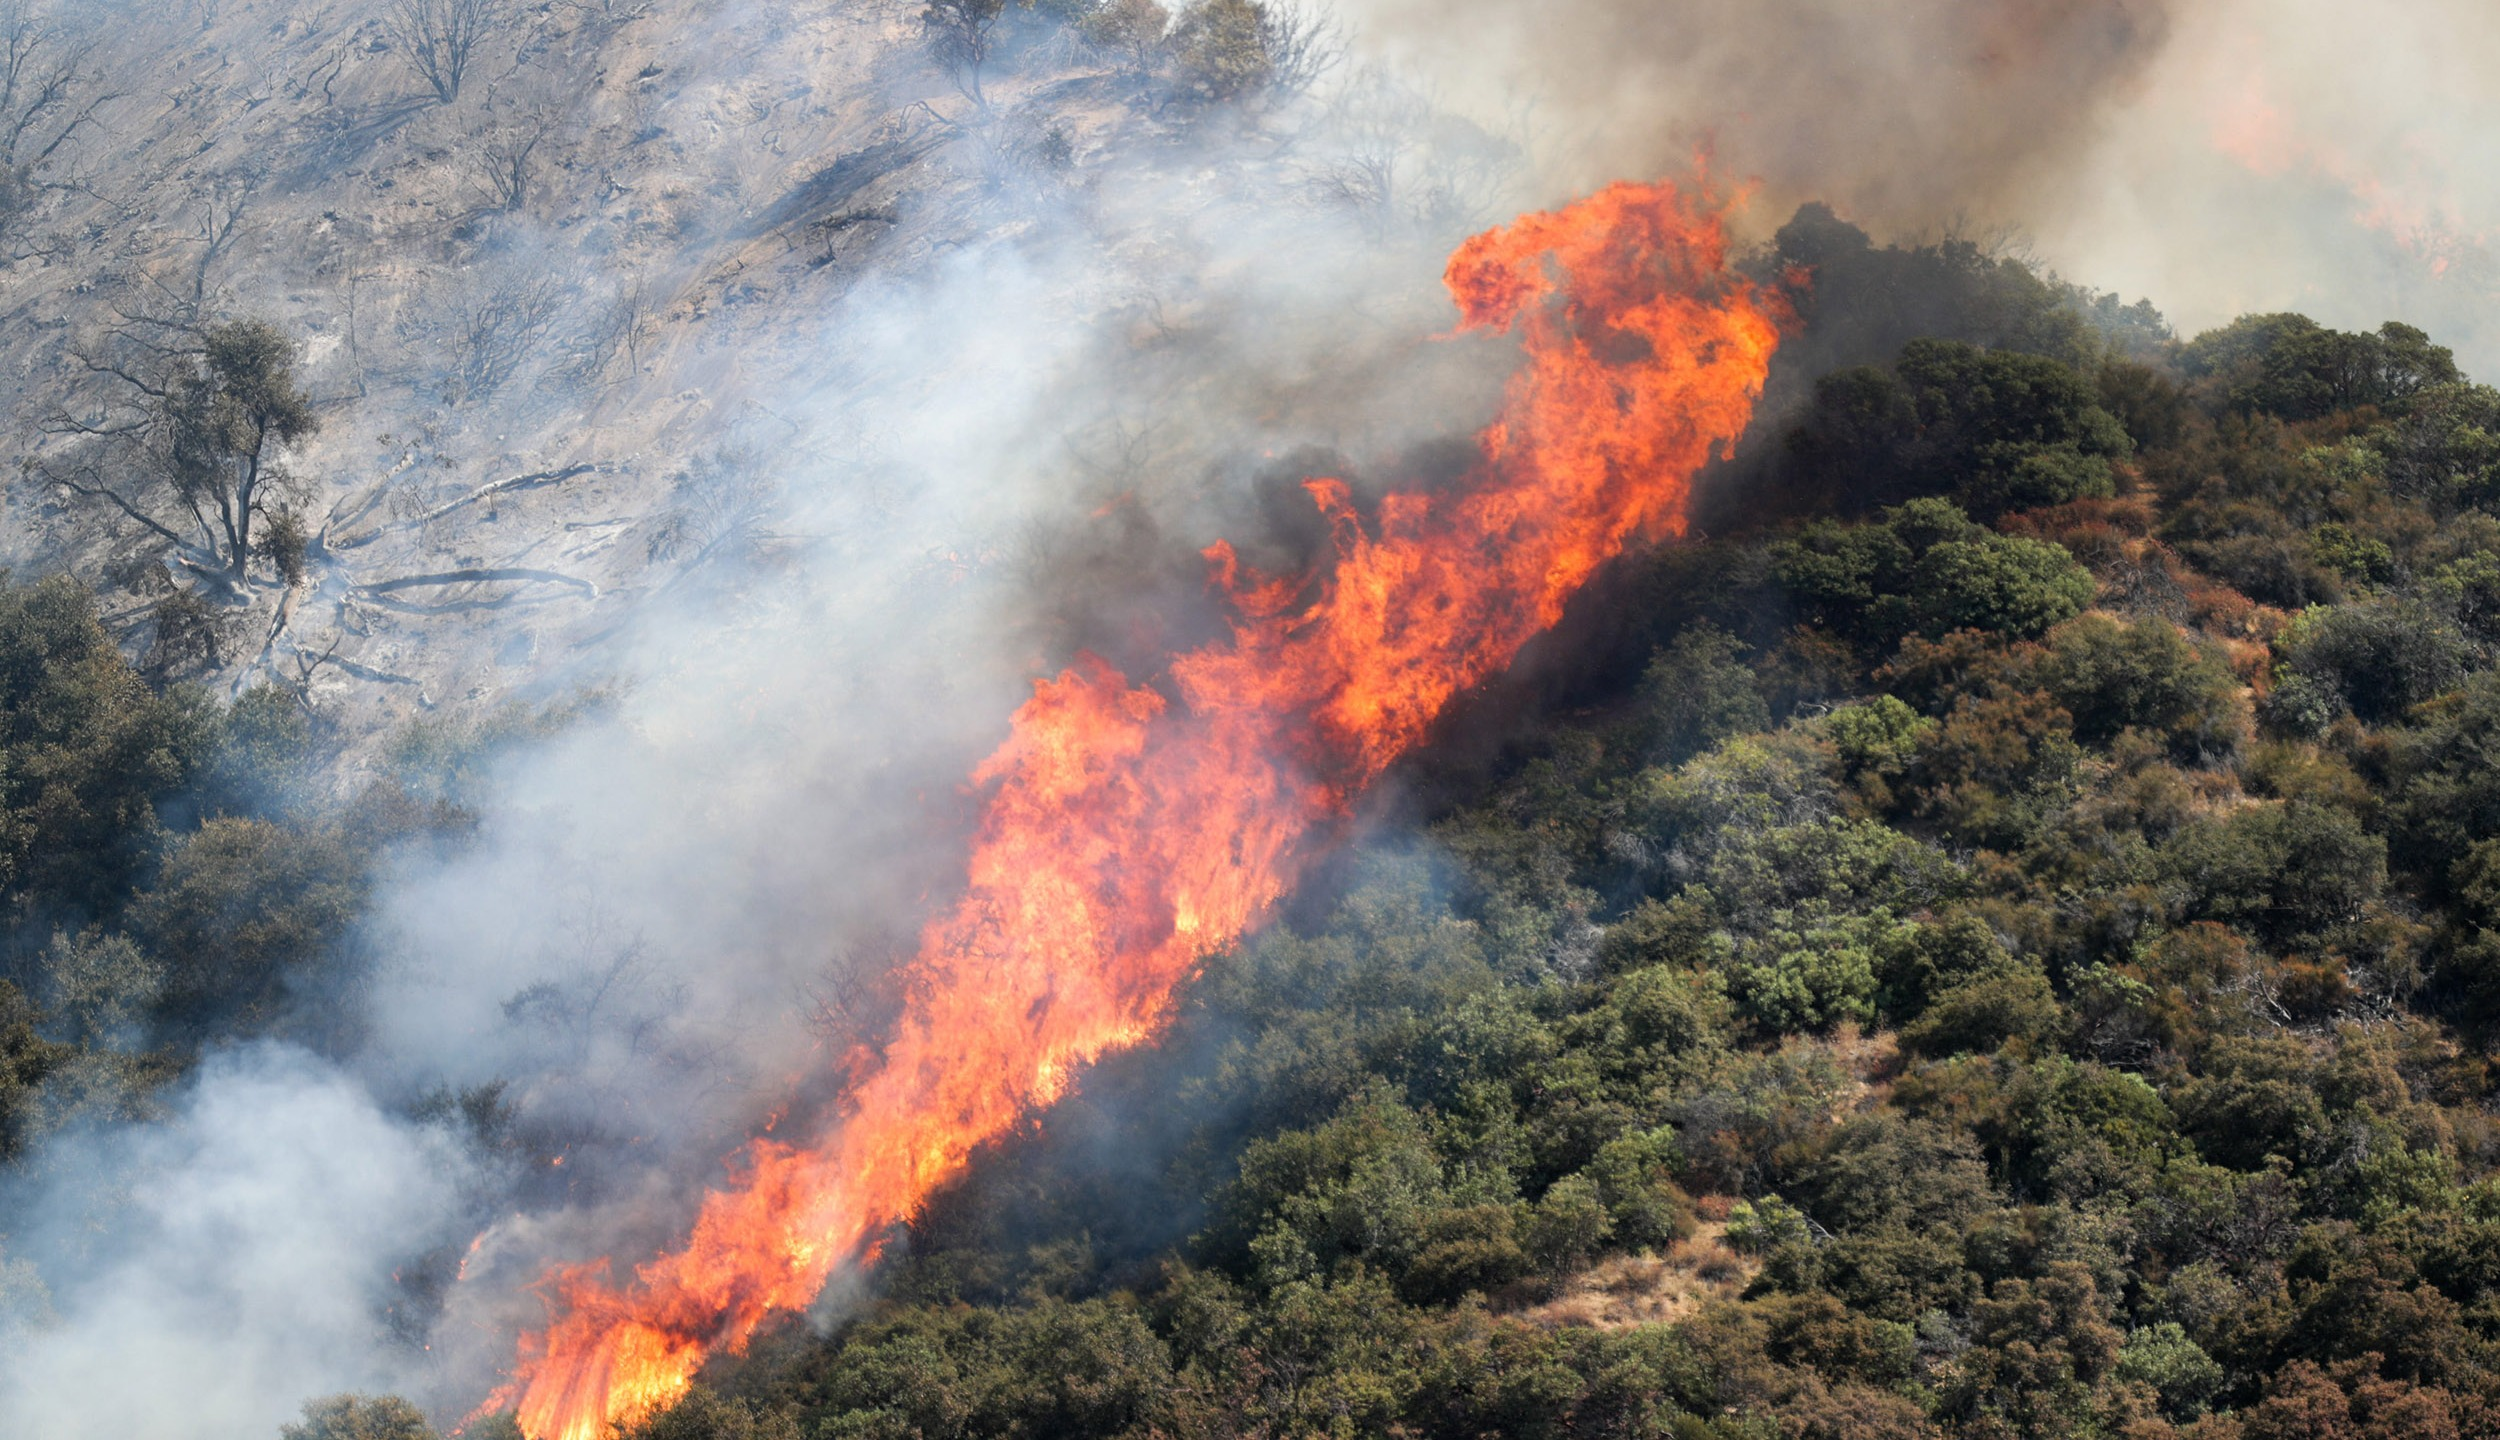 The El Dorado Fire burns in the San Bernardino National Forest near Oak Glen, Calif., on Sunday, September 6, 2020.Eldoradofire 10